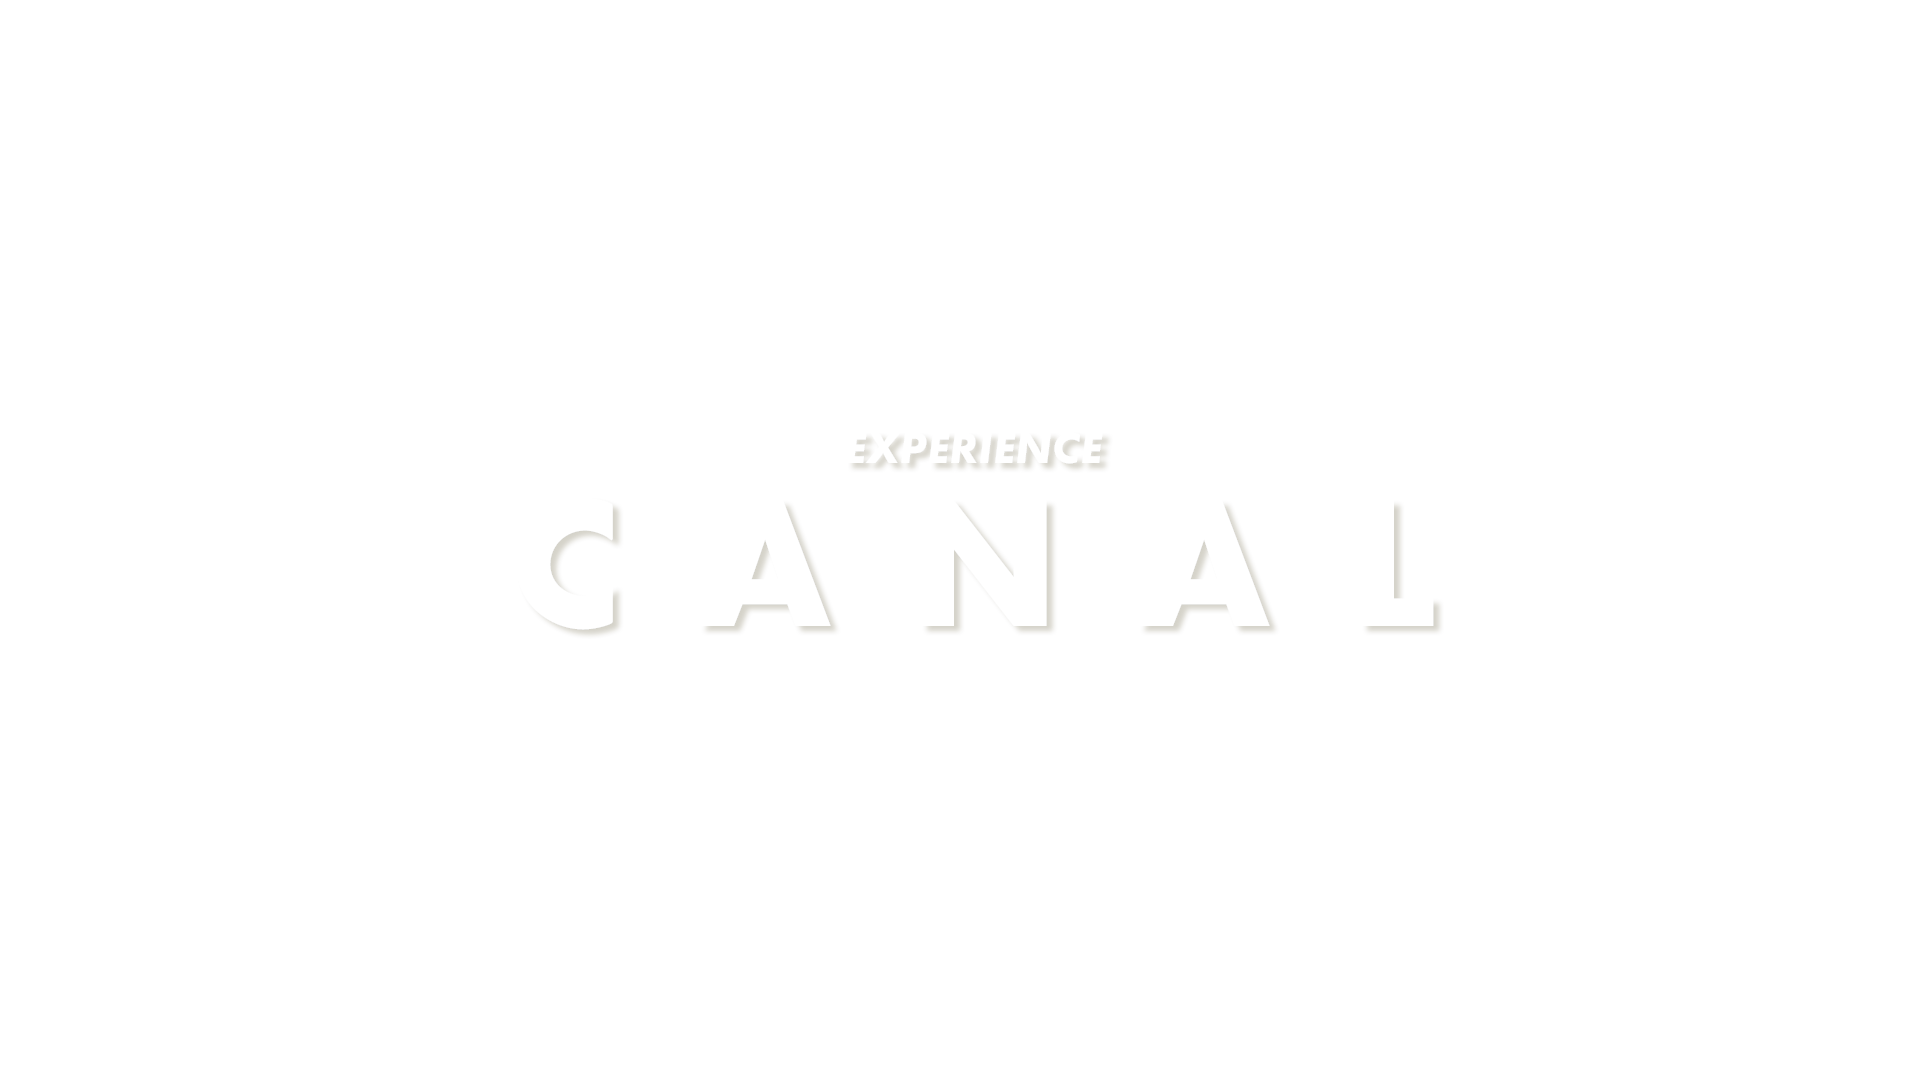 CANAL EXPERIENCE